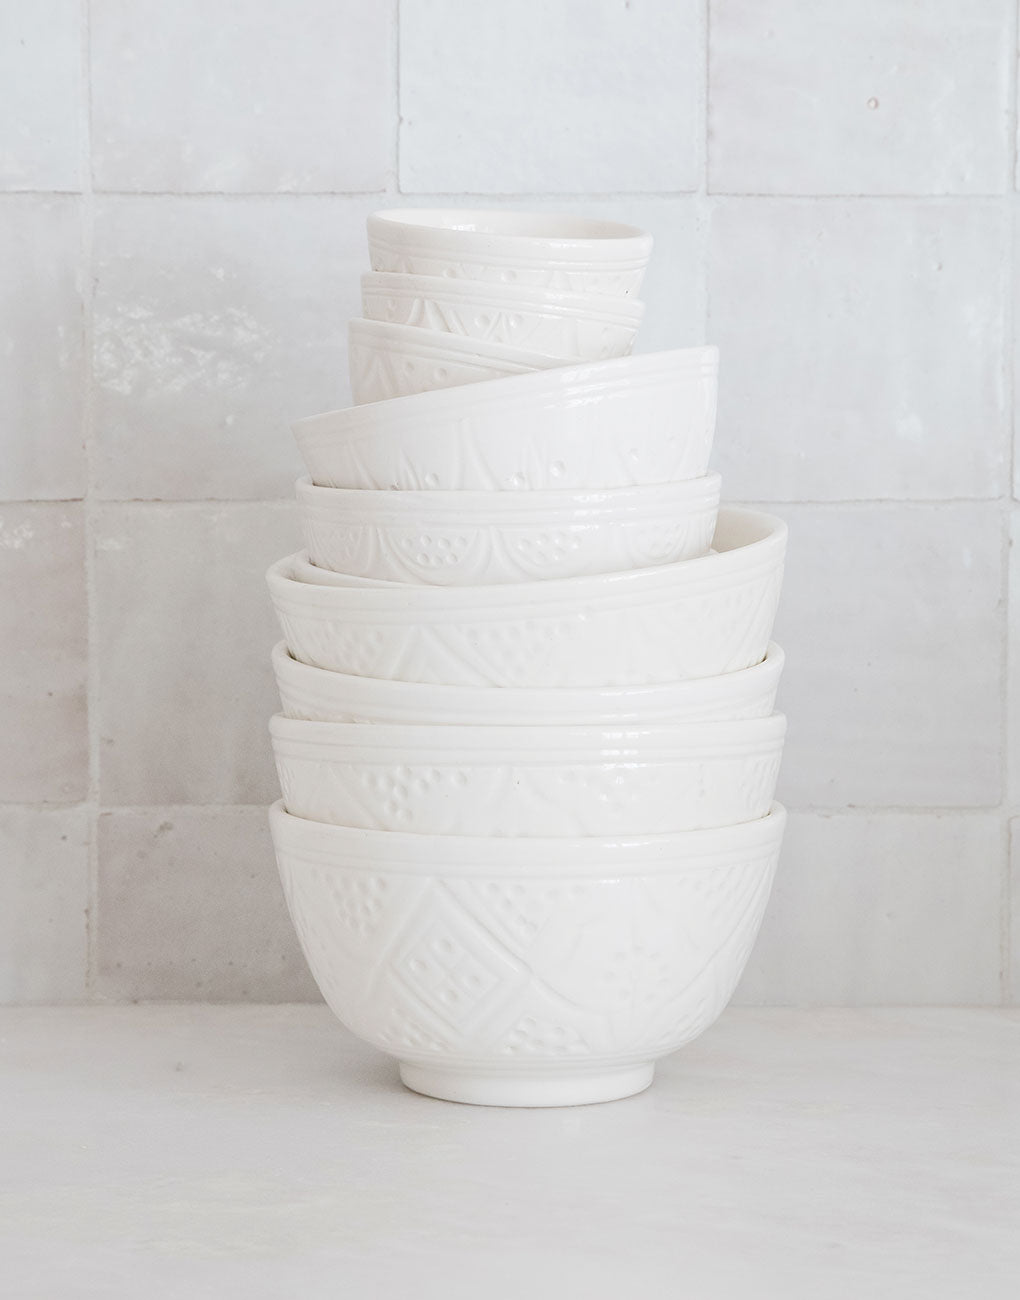 Ceramic Pasta Bowl - White | The Little Market